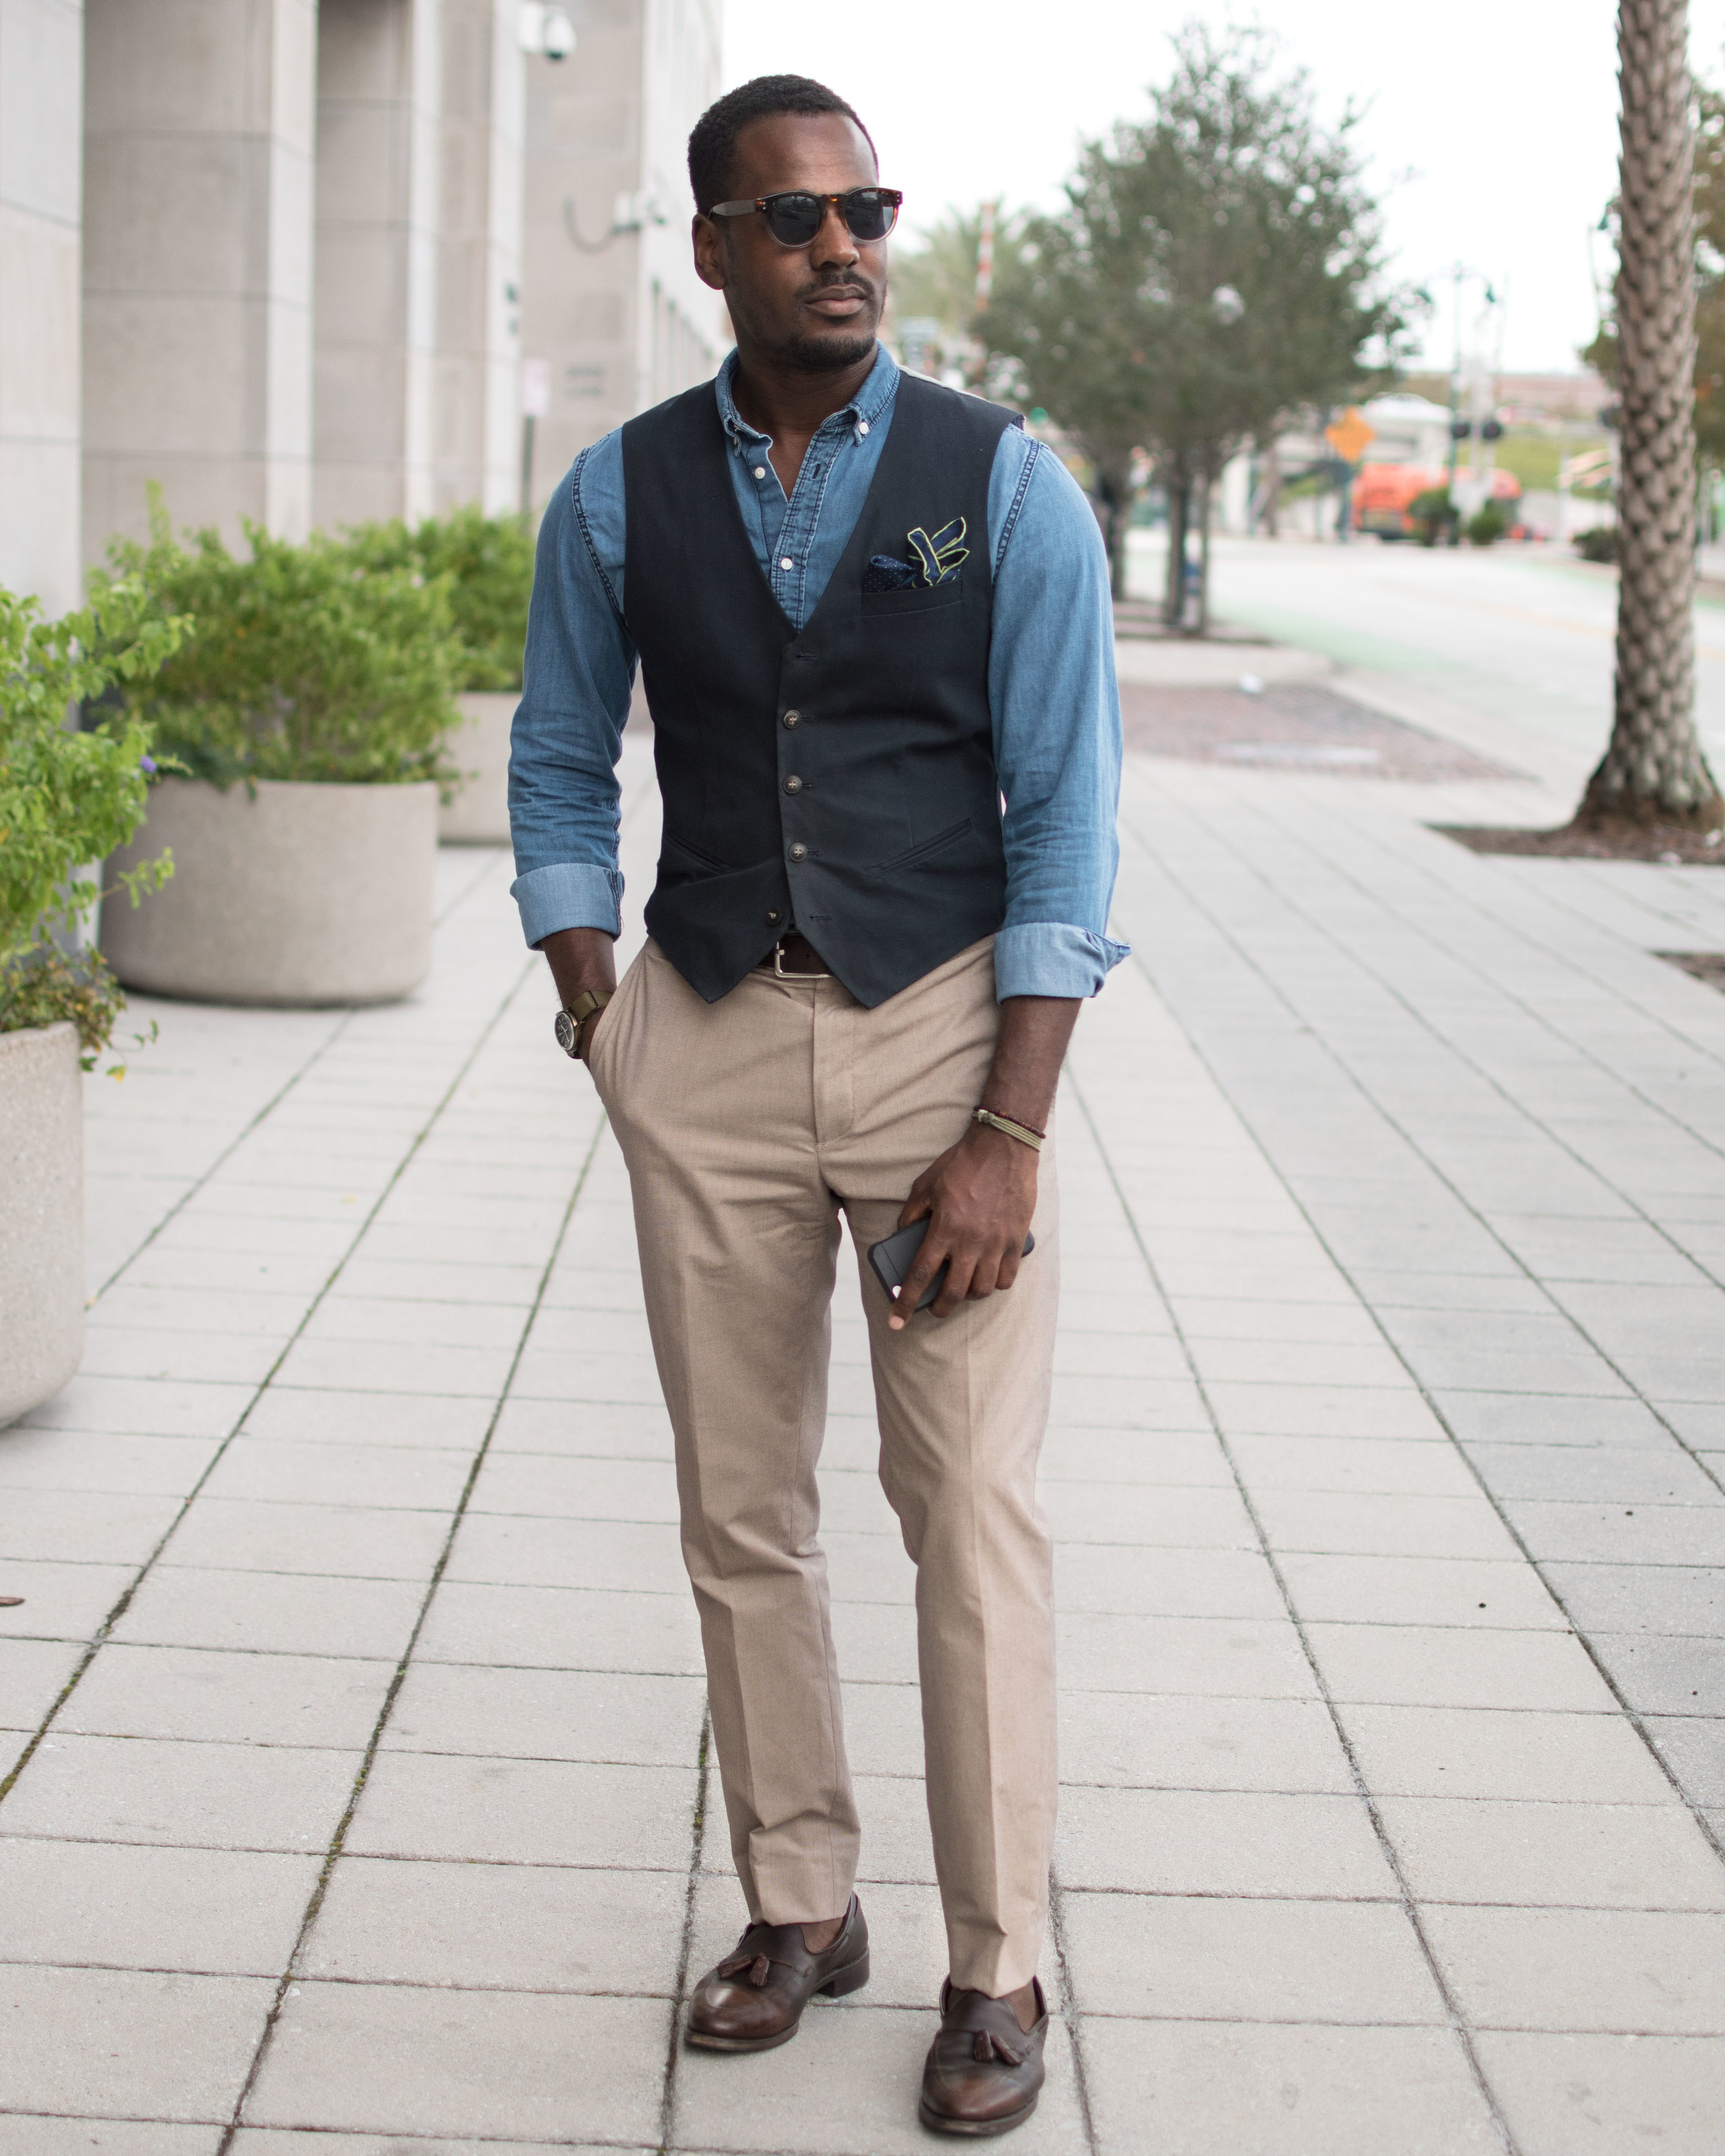 One thing I discovered with cotton is how much of a perennial role it plays in my varied⠀ wardrobe. Loving how easy it is to incorporate it into my dapper outfits.@DiscoverCotton⠀ #GregsStyleGuide #ShopCotton